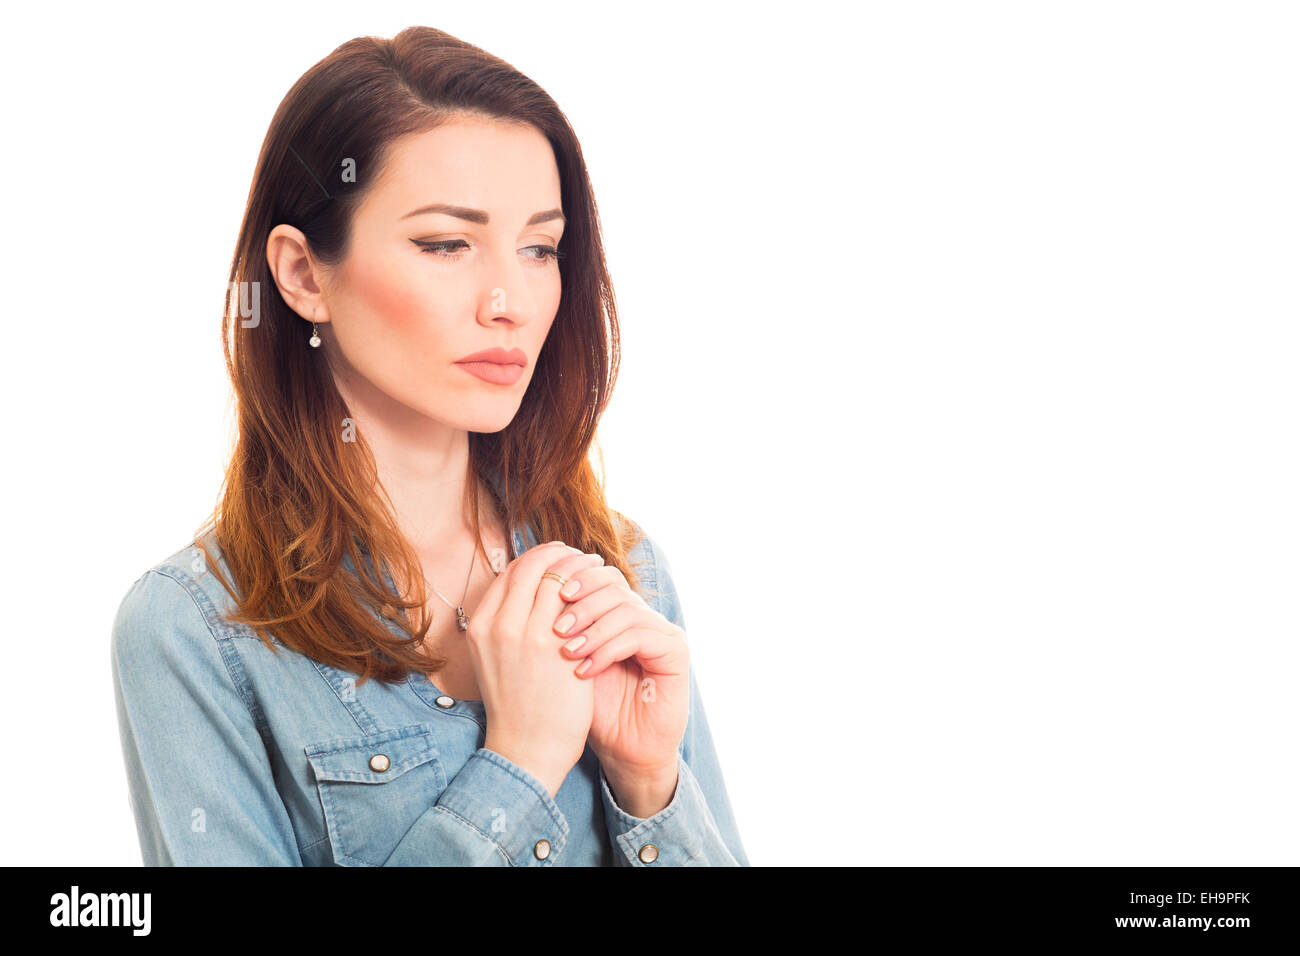 attractive lady contemplating about family issues touching ring - Stock Image